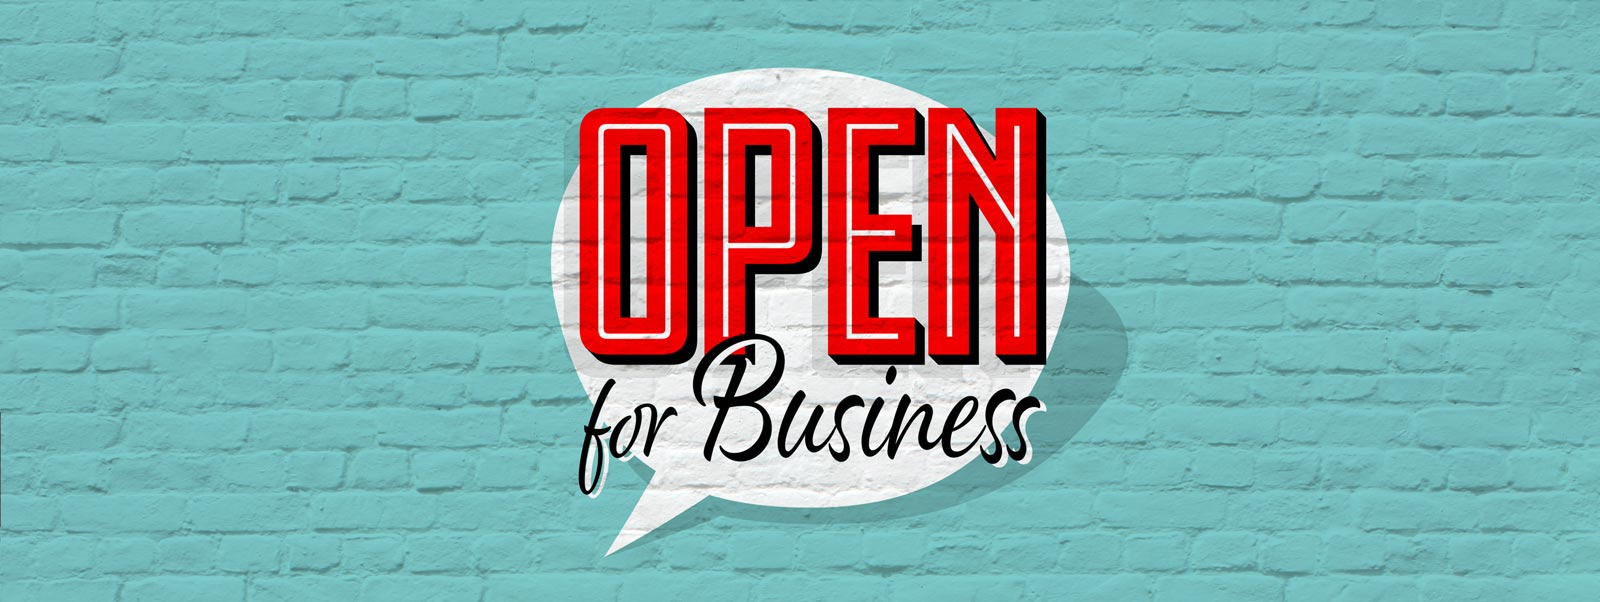 Affiliated Mortgage is open for business